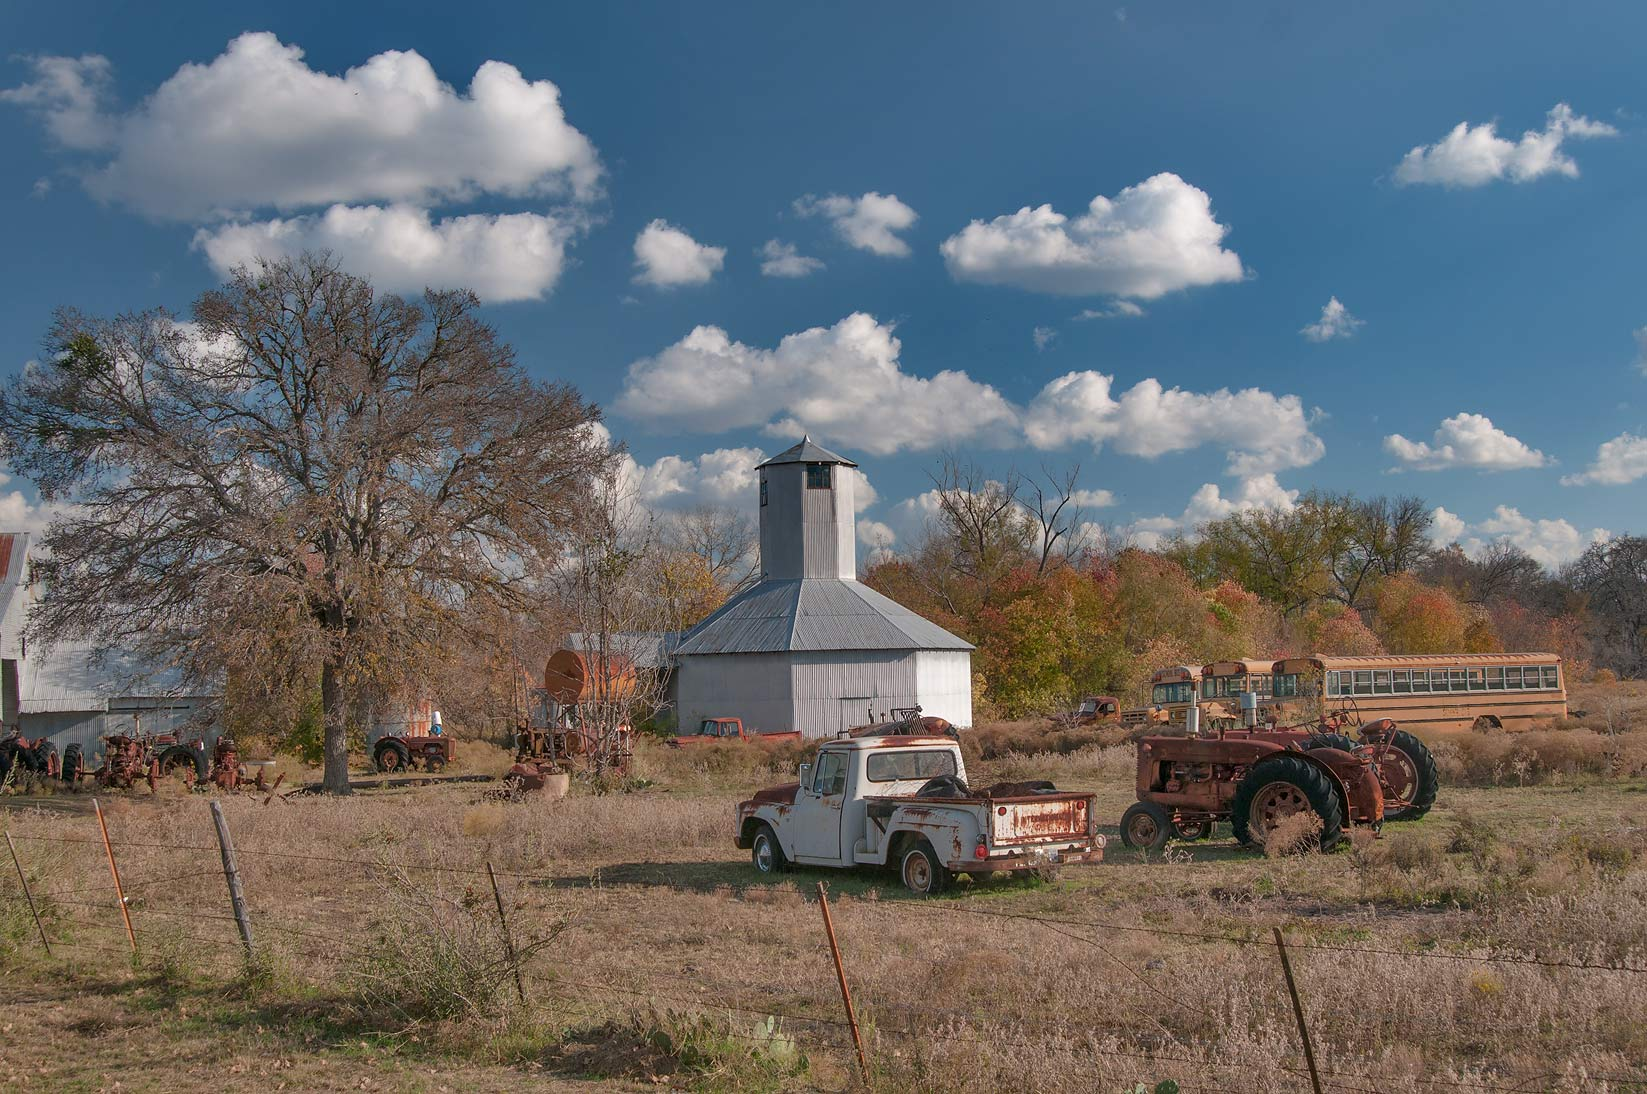 A farm in Sharp, view from Rd. FM 487. Texas